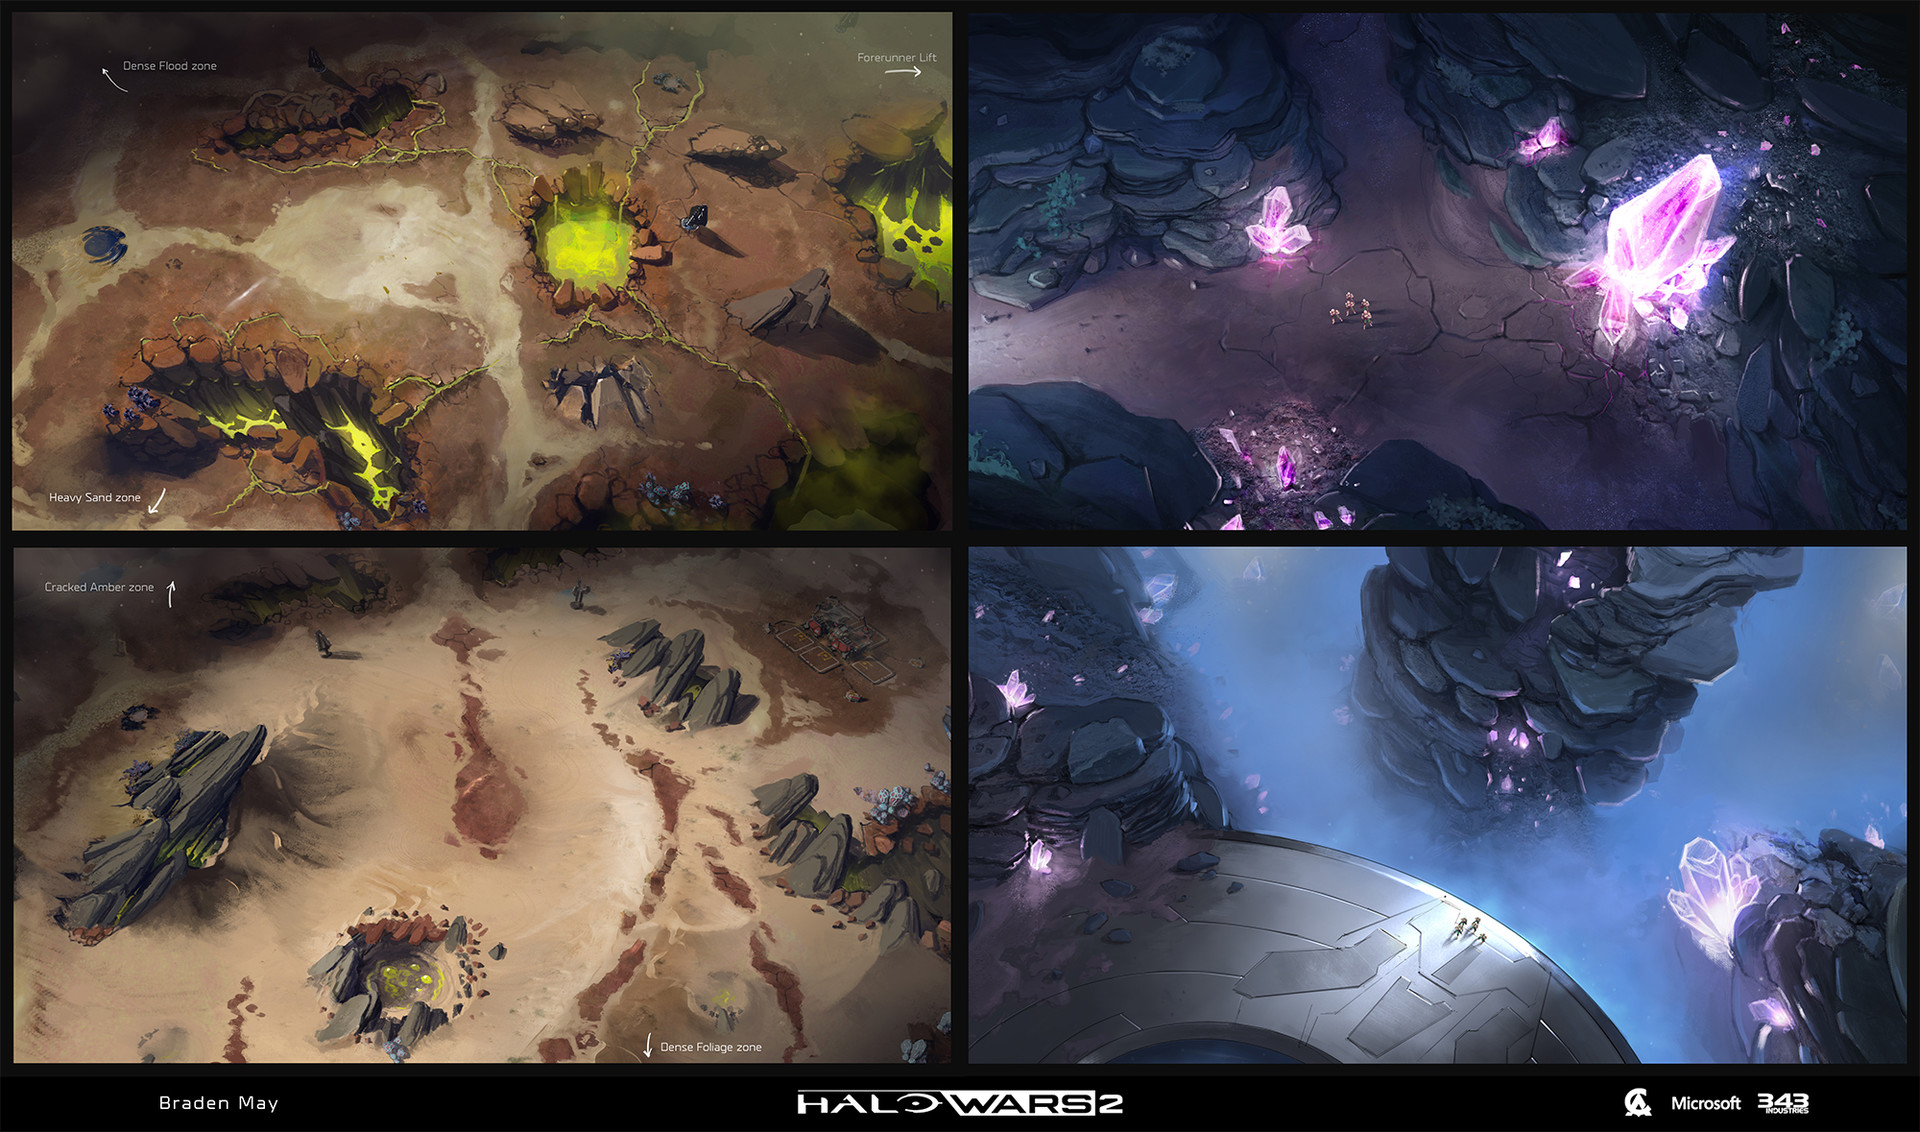 ArtStation - Halo Wars 2: Concepts & Paintovers, Braden May